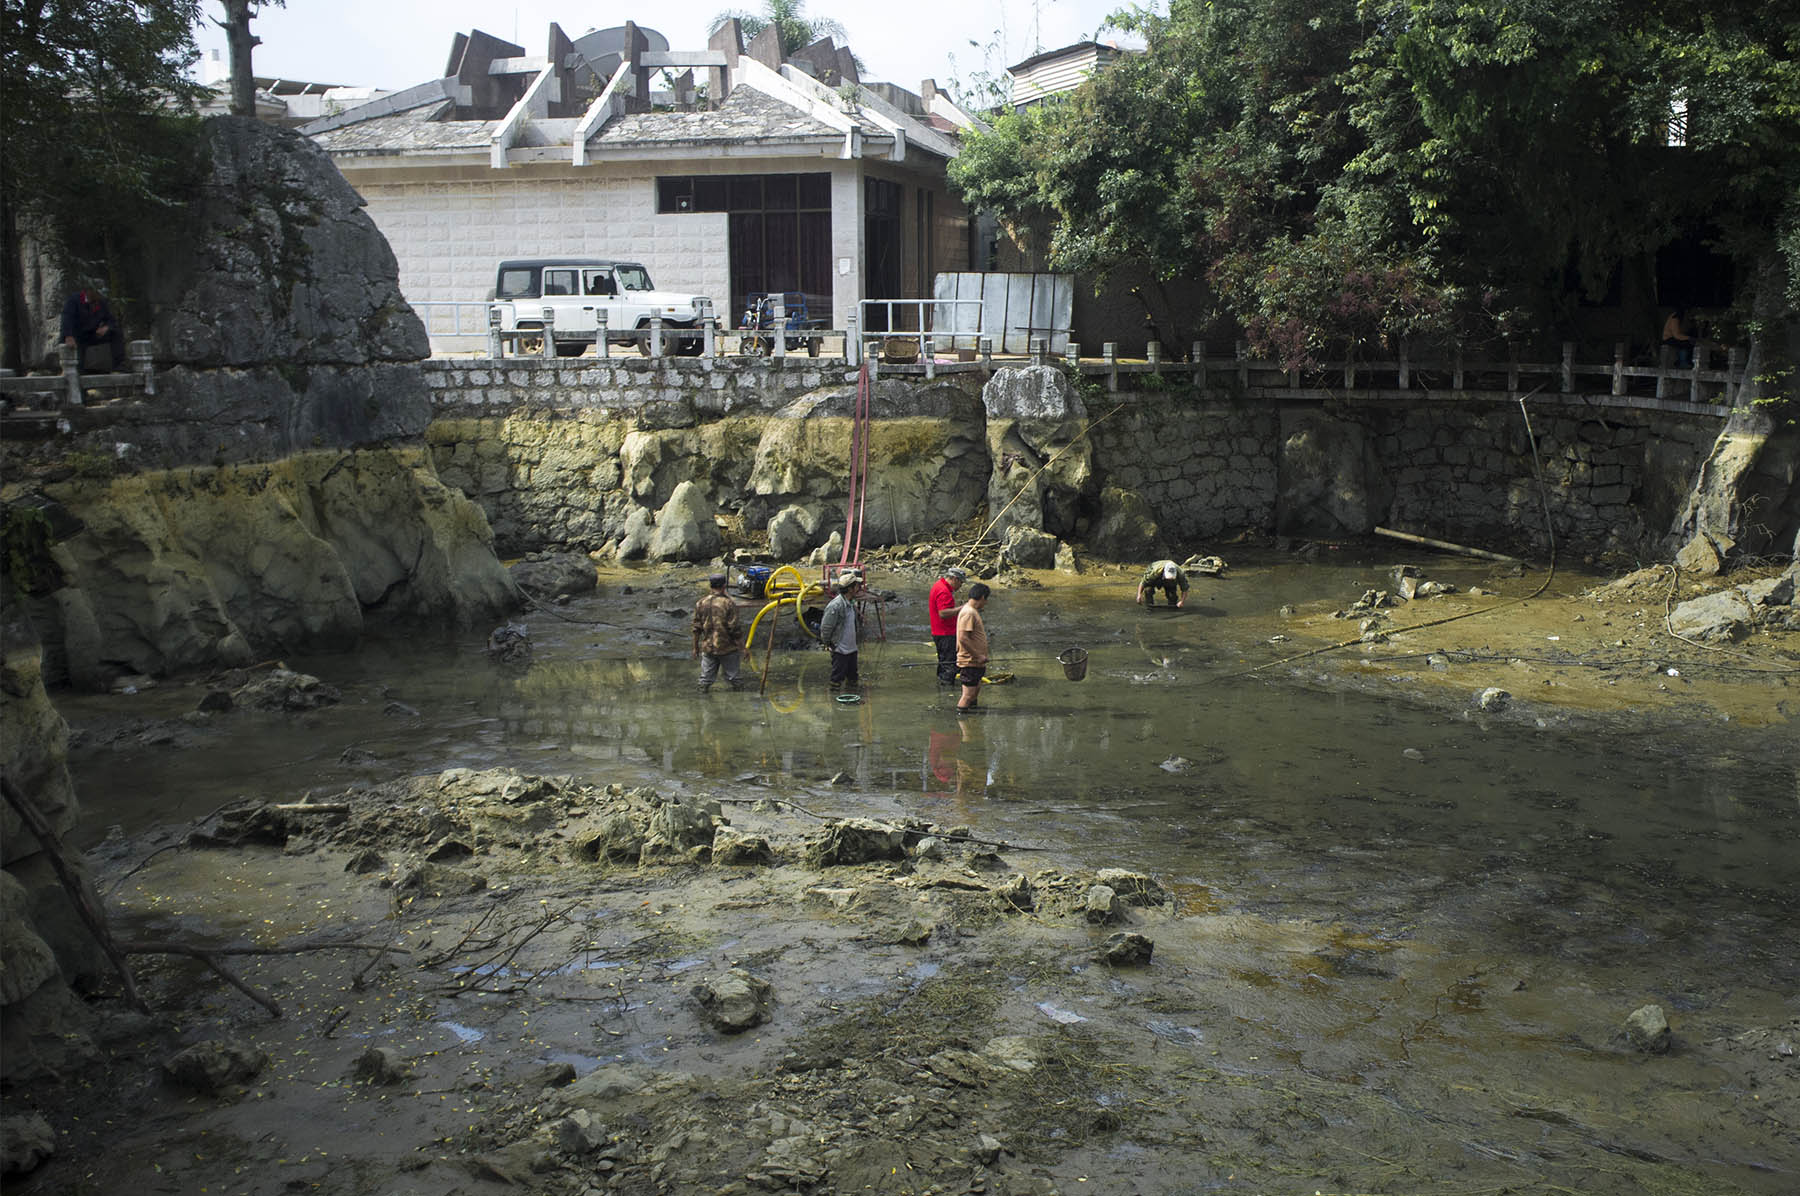 Workers draining the pond.